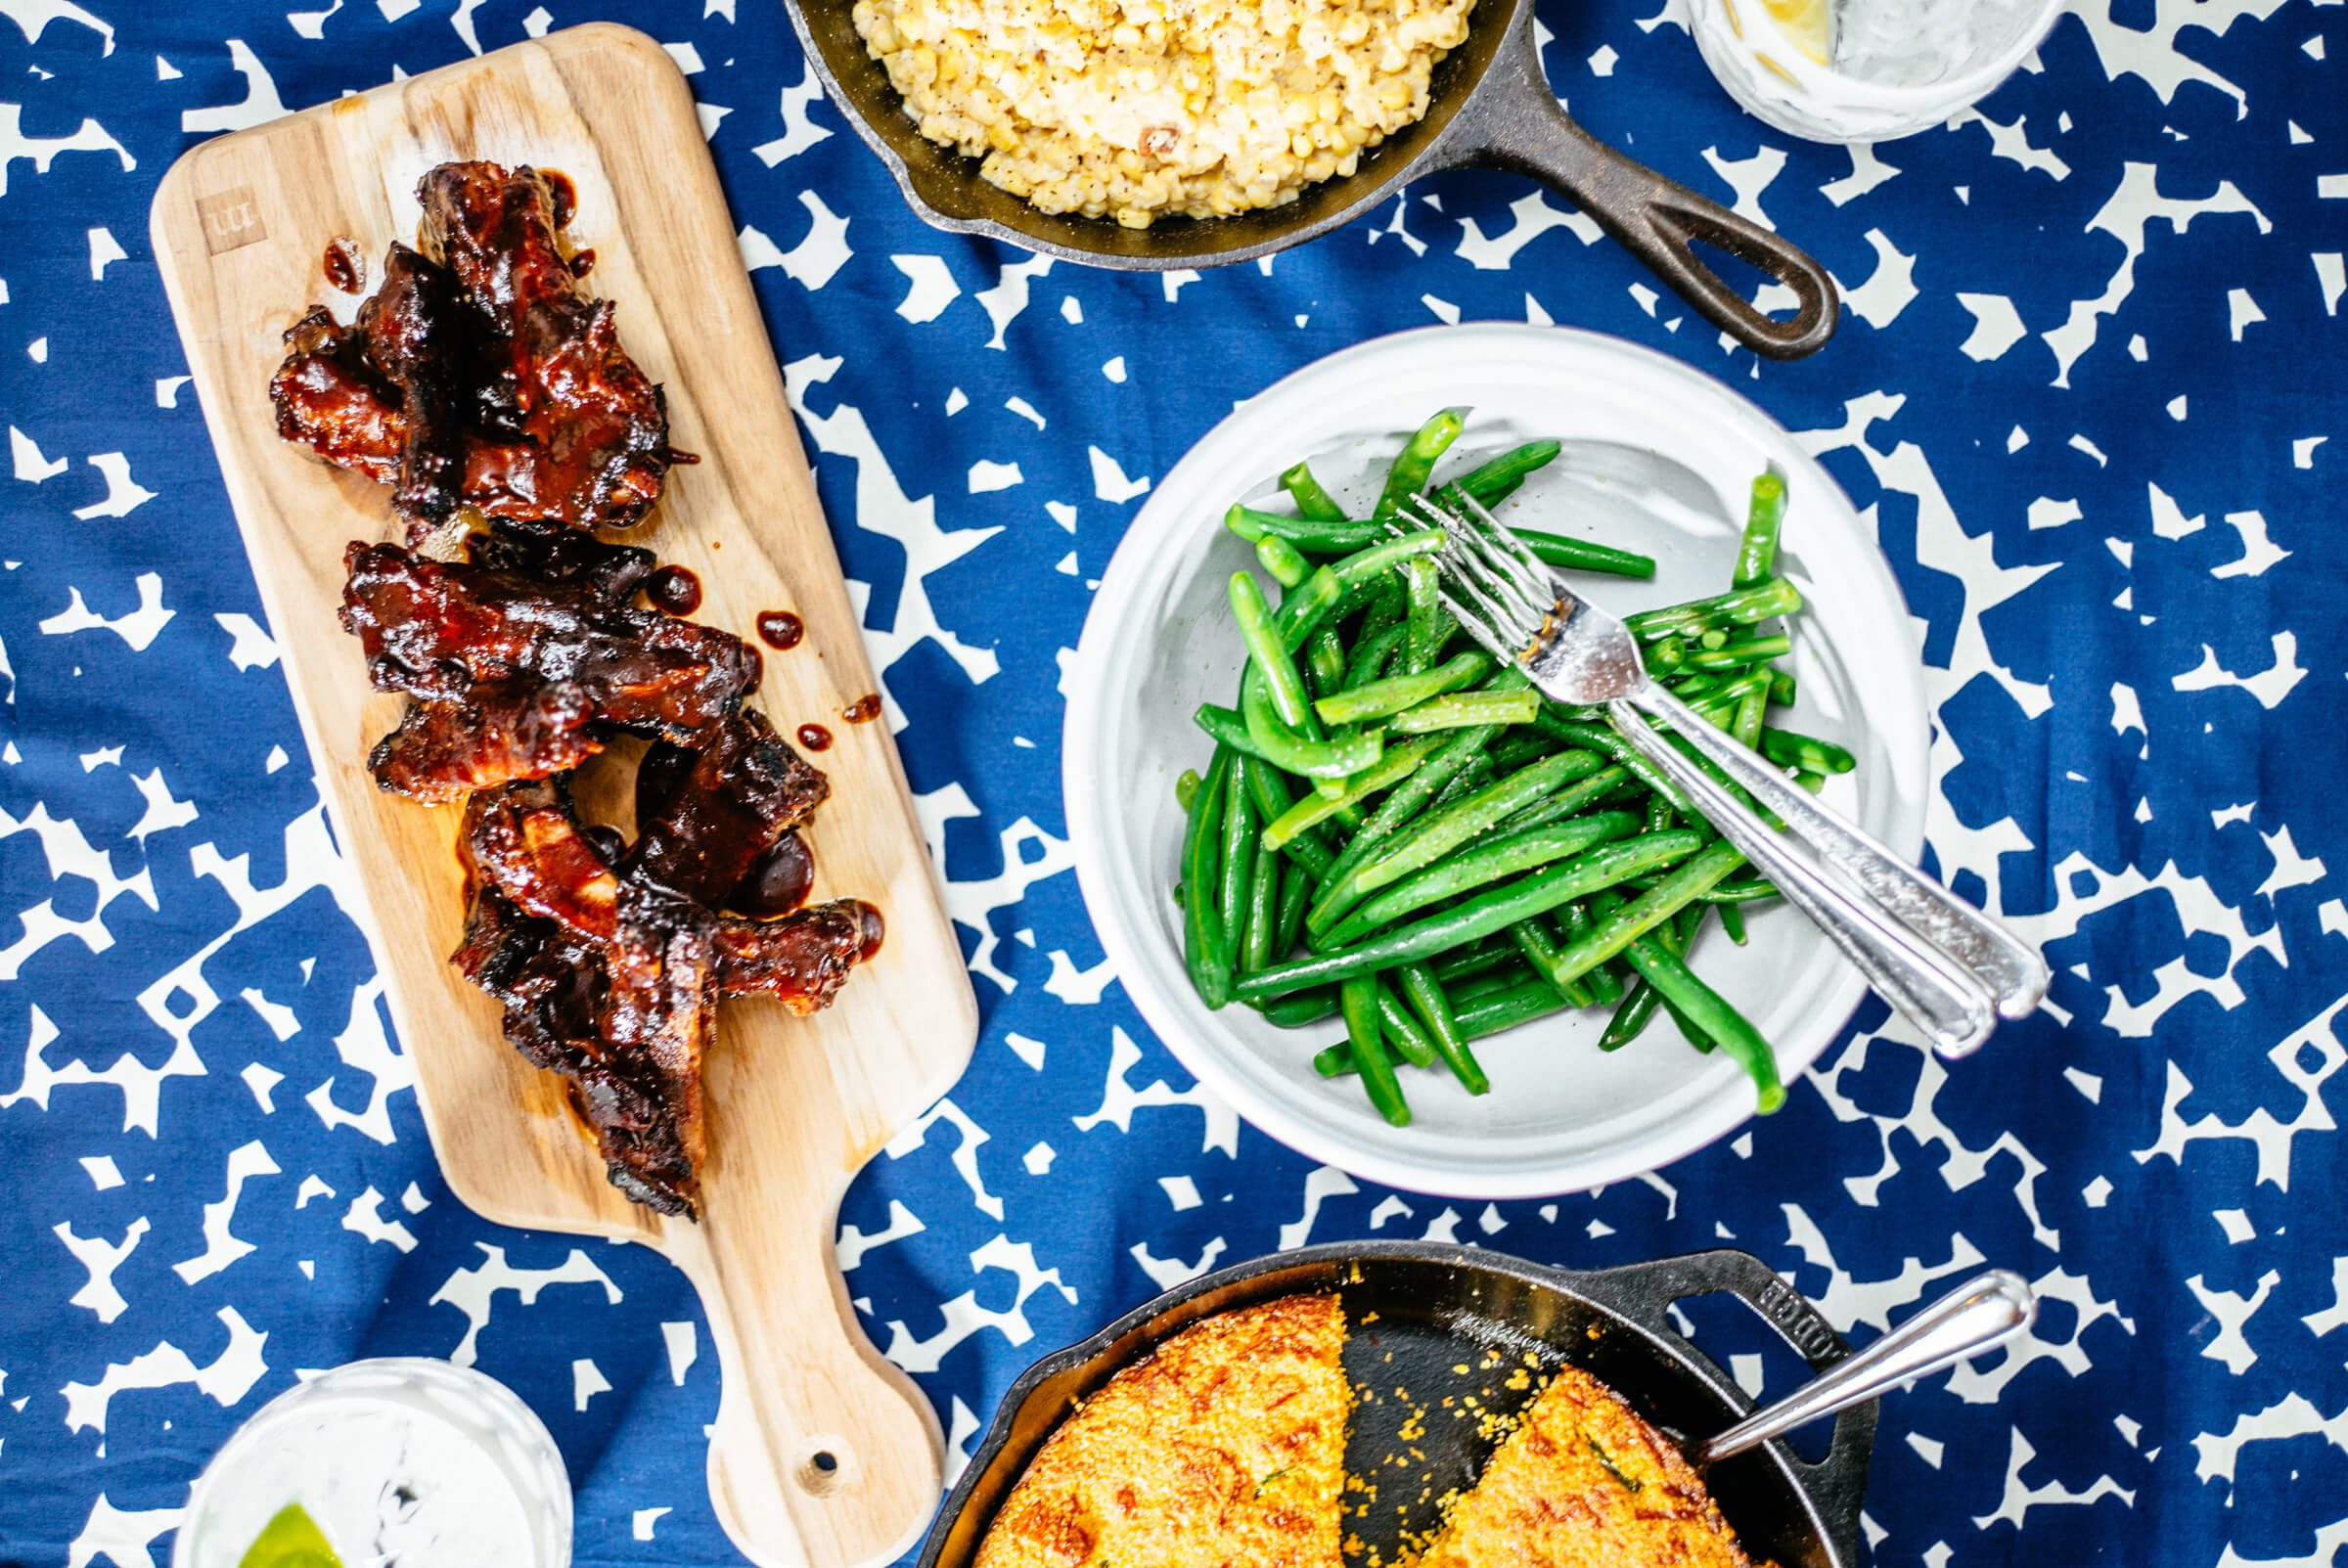 Green bean salad is great for 4th of july